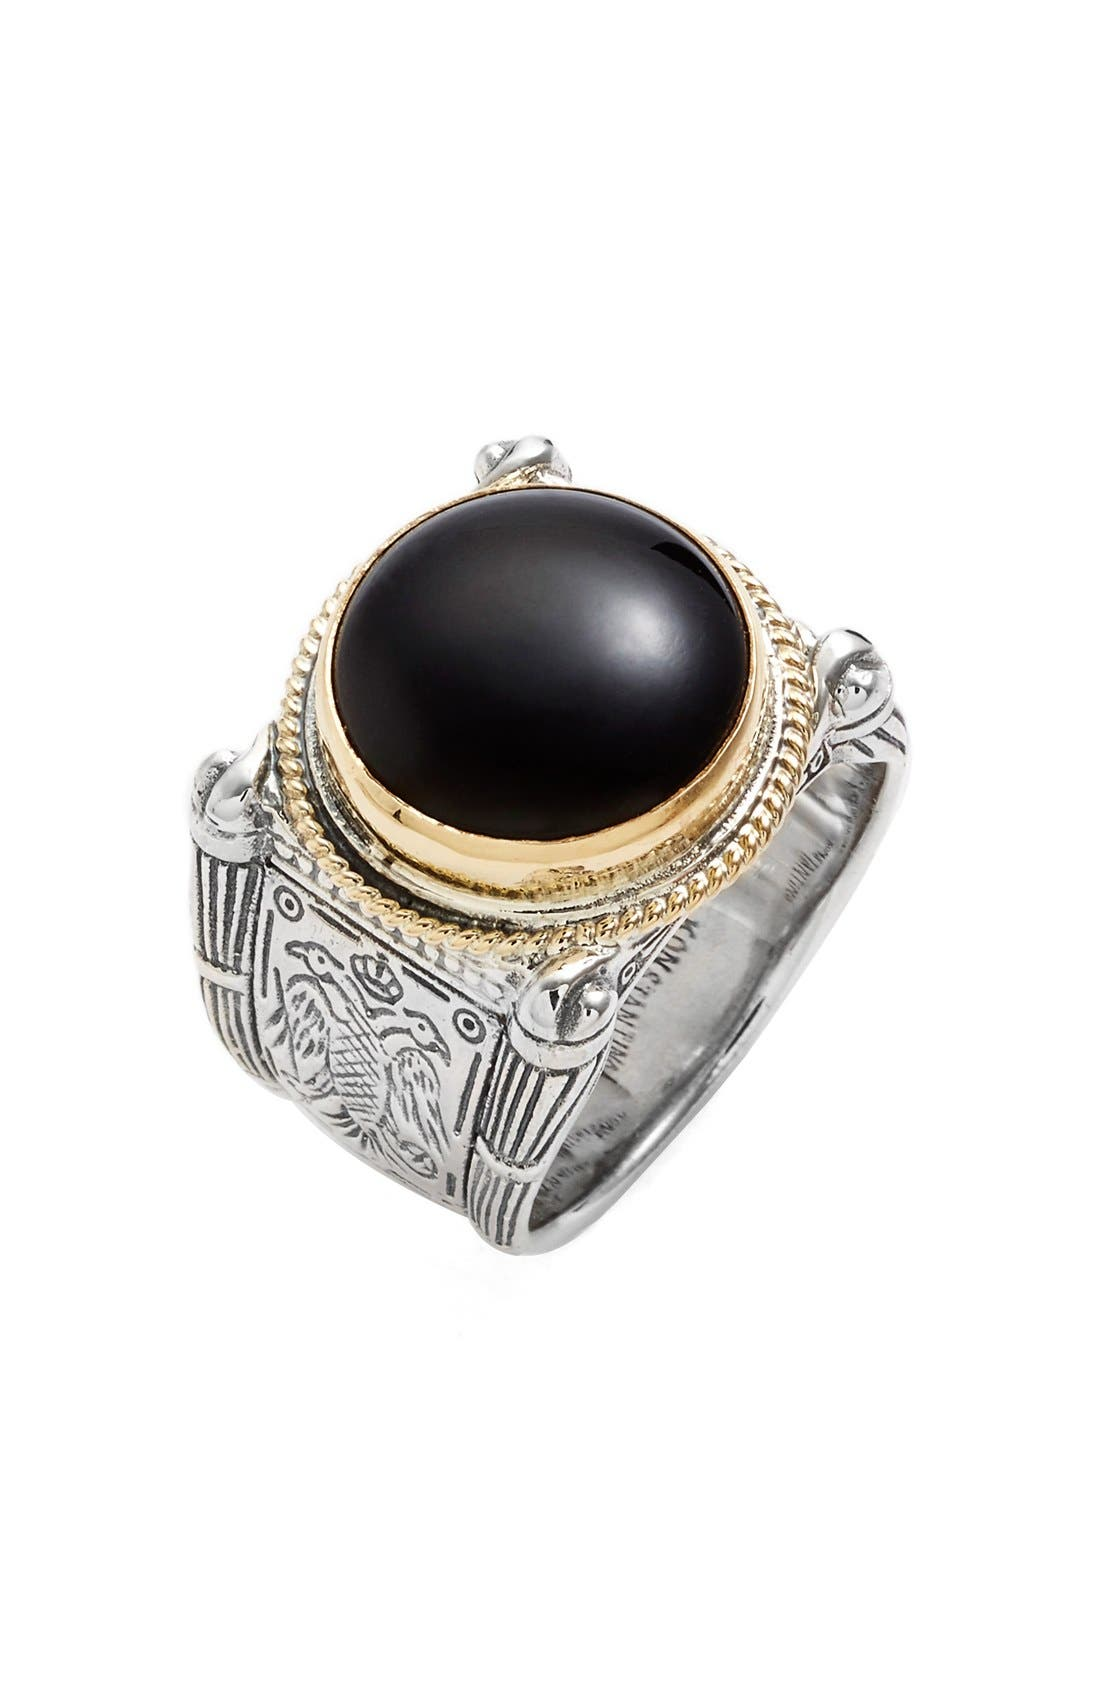 KONSTANTINO Minos Etched Black Onyx Ring